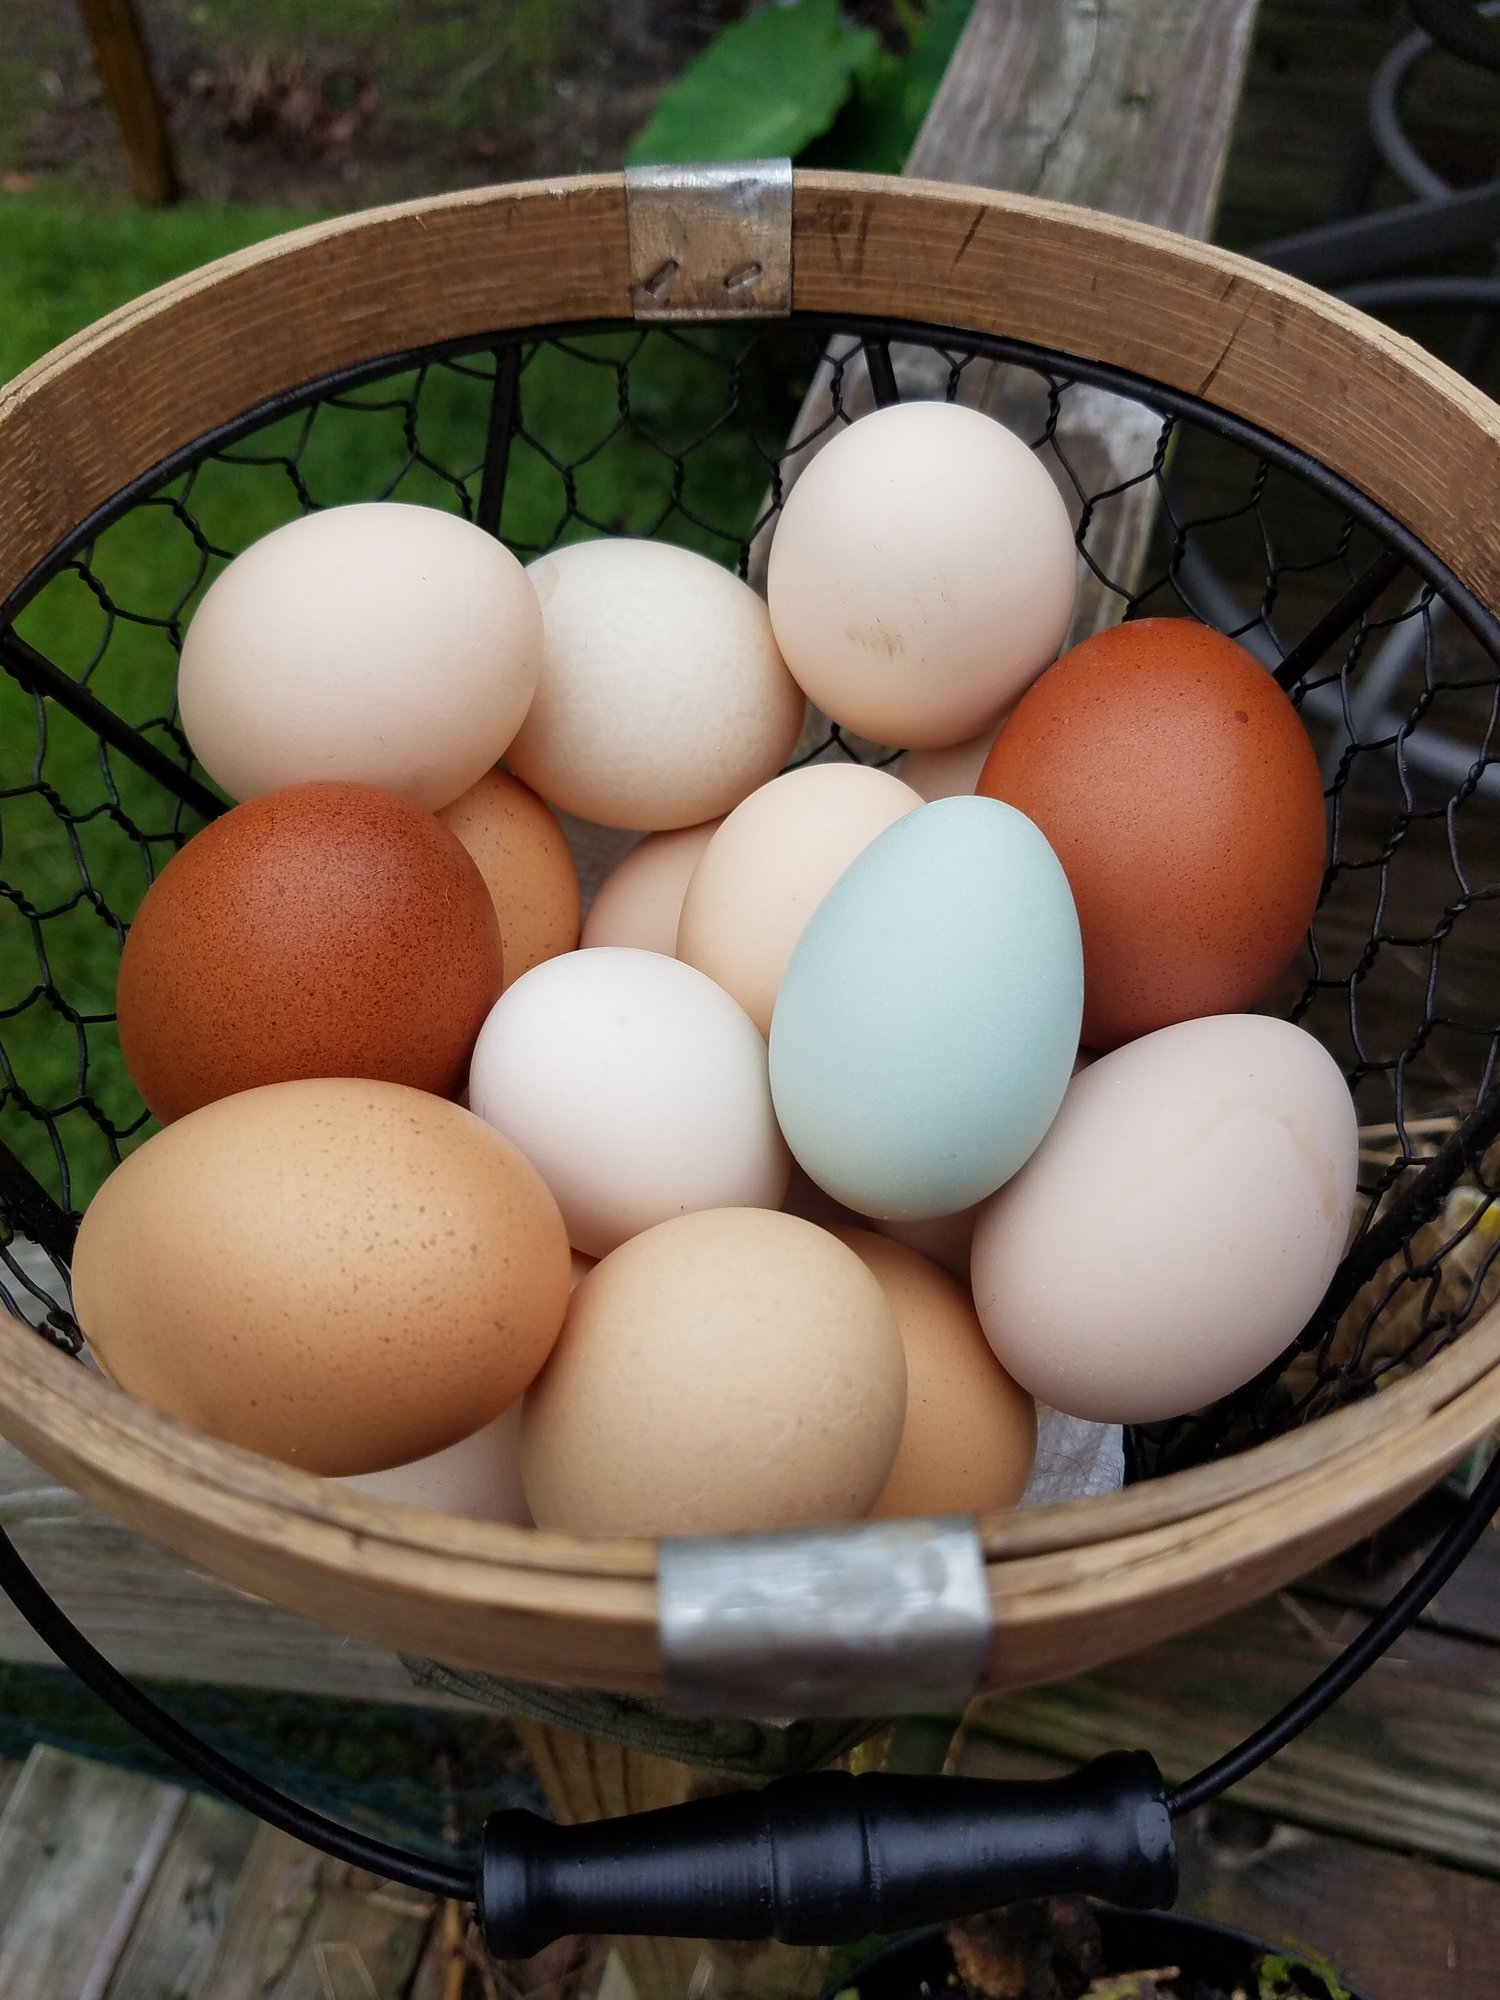 Egg basket 3.jpg